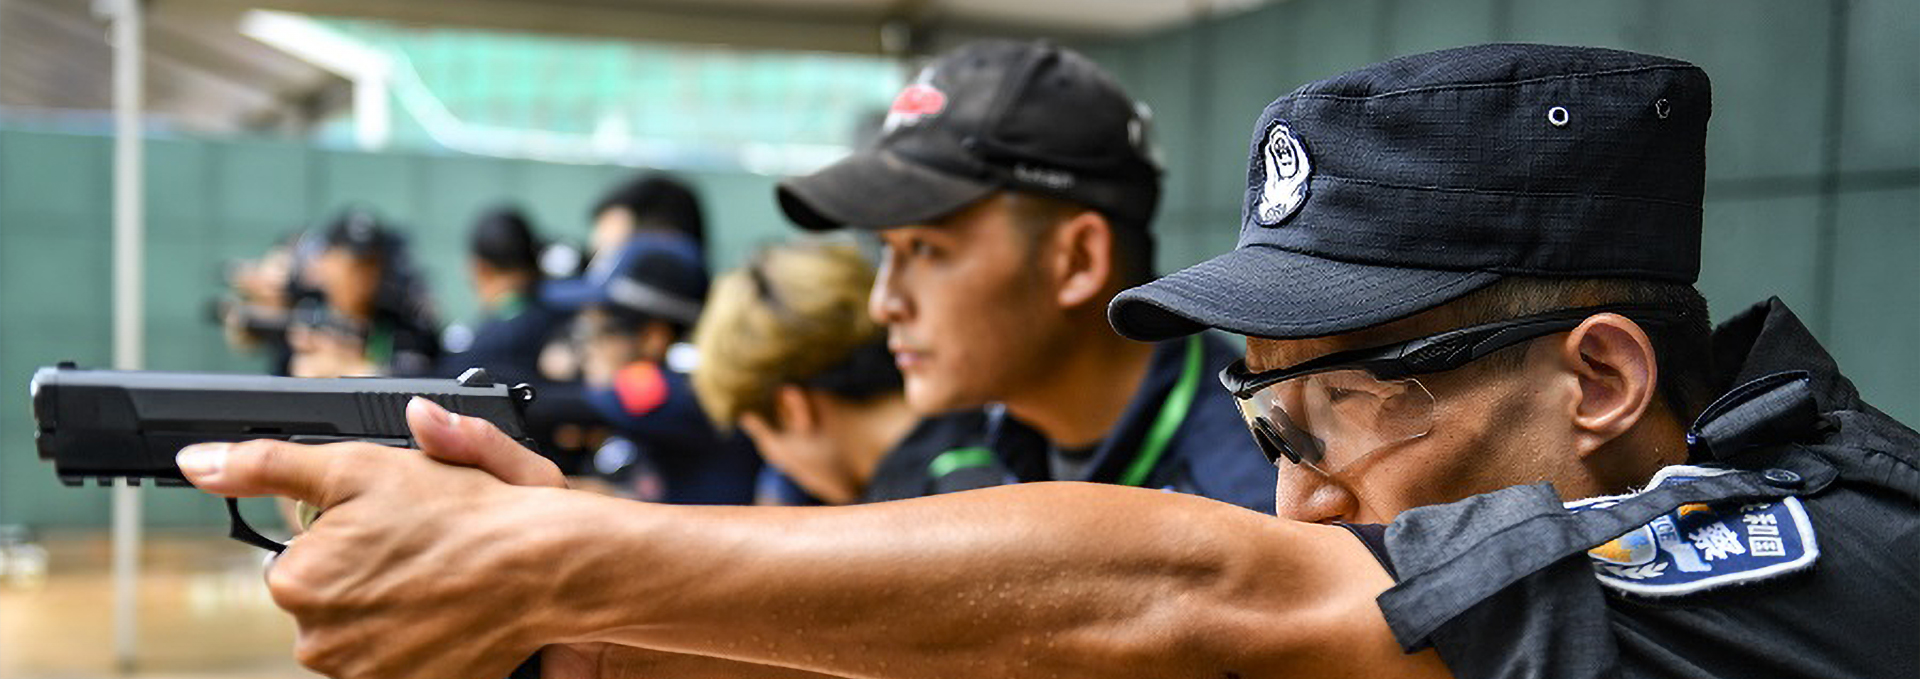 2nd-World-Police-Service-Pistol-Shooting-Championship-2018-Guangdong-China